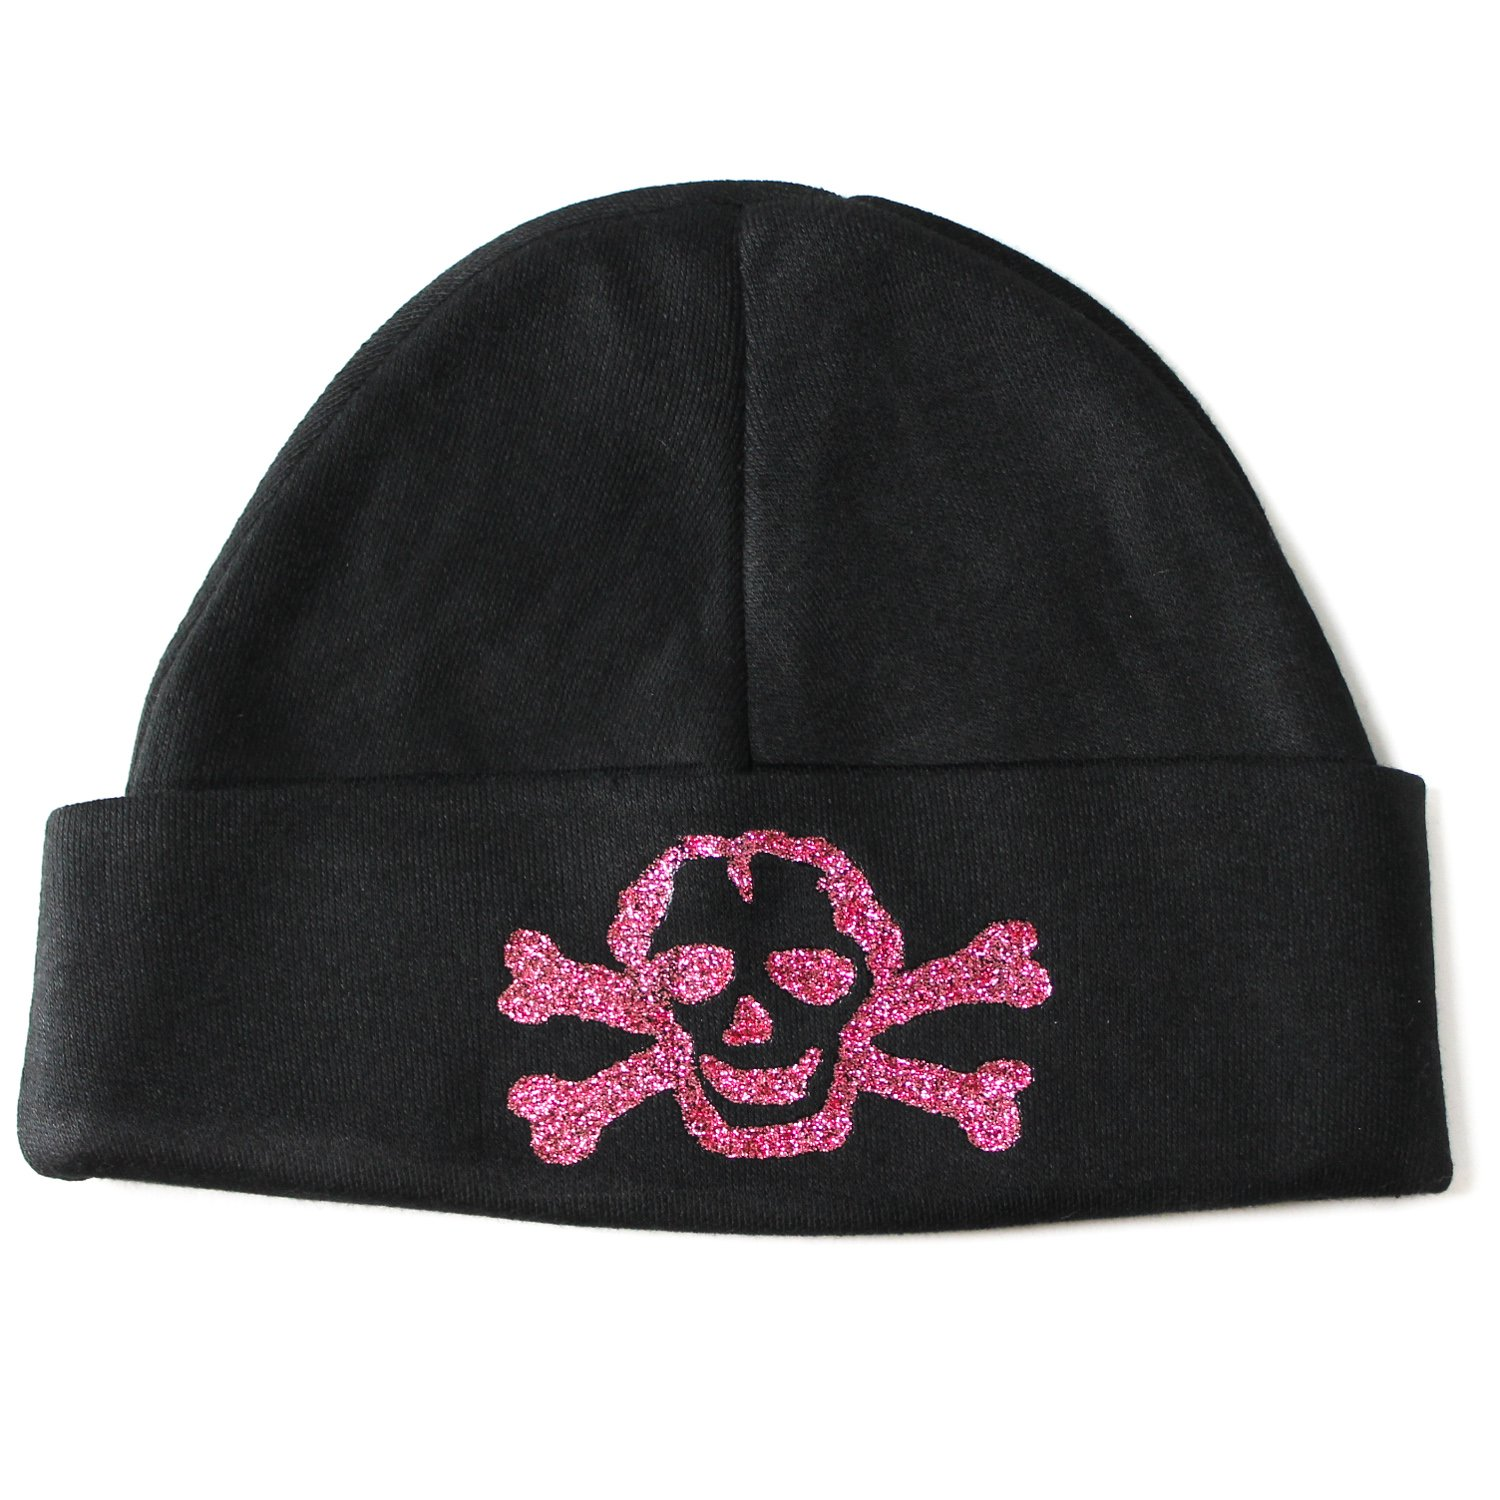 Crazy Baby Clothing Pink Glitter Scribble Skull Baby Beanie One Size in Black C8200048BK